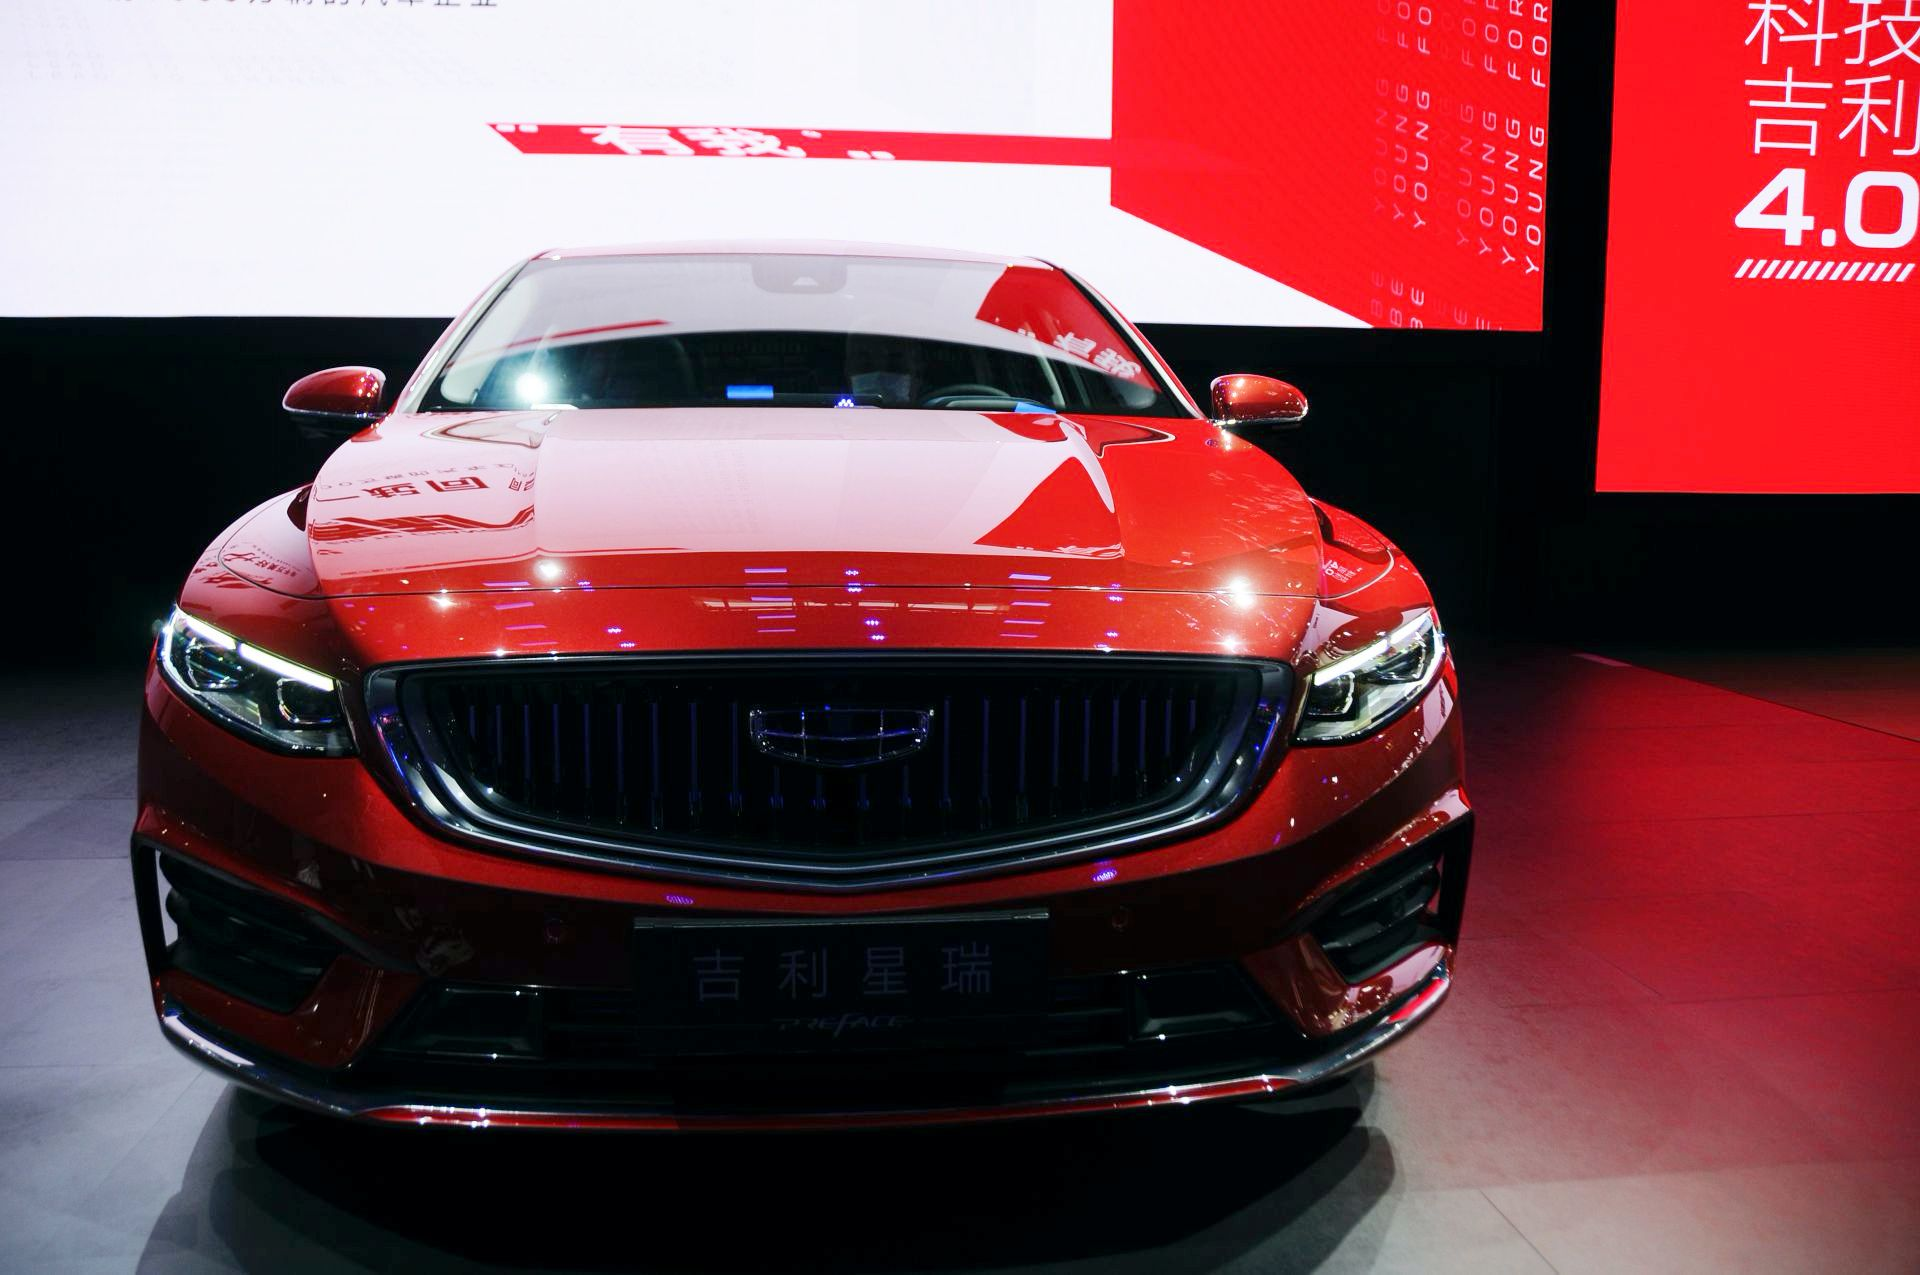 2021-Geely-Preface-aka-Xing-Rui-at-the-2020-Beijing-Auto-Show-1-1.jpg